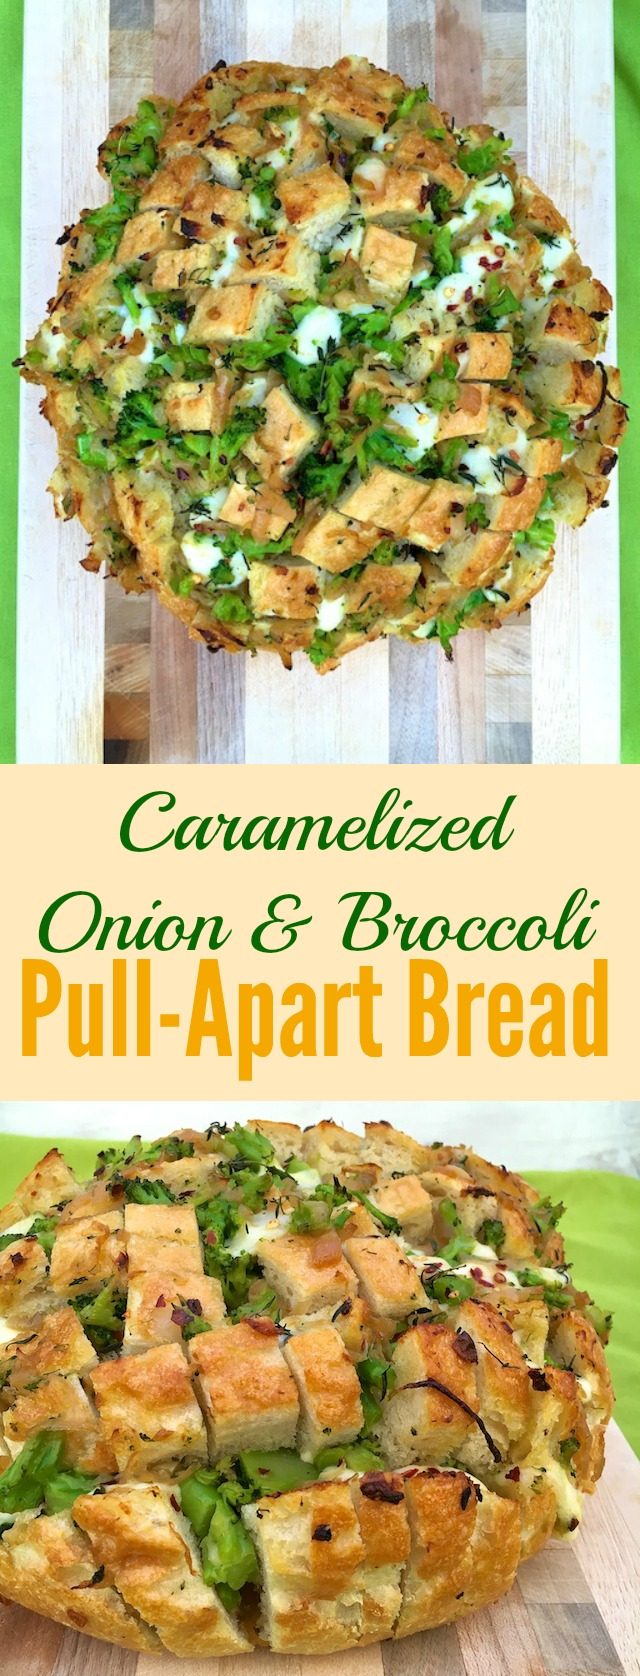 Caramelized Onion & Broccoli Pull-Apart Bread: A savory version of monkey bread featuring sweet onions, broccoli and melted cheese - perfect for game day or entertaining.